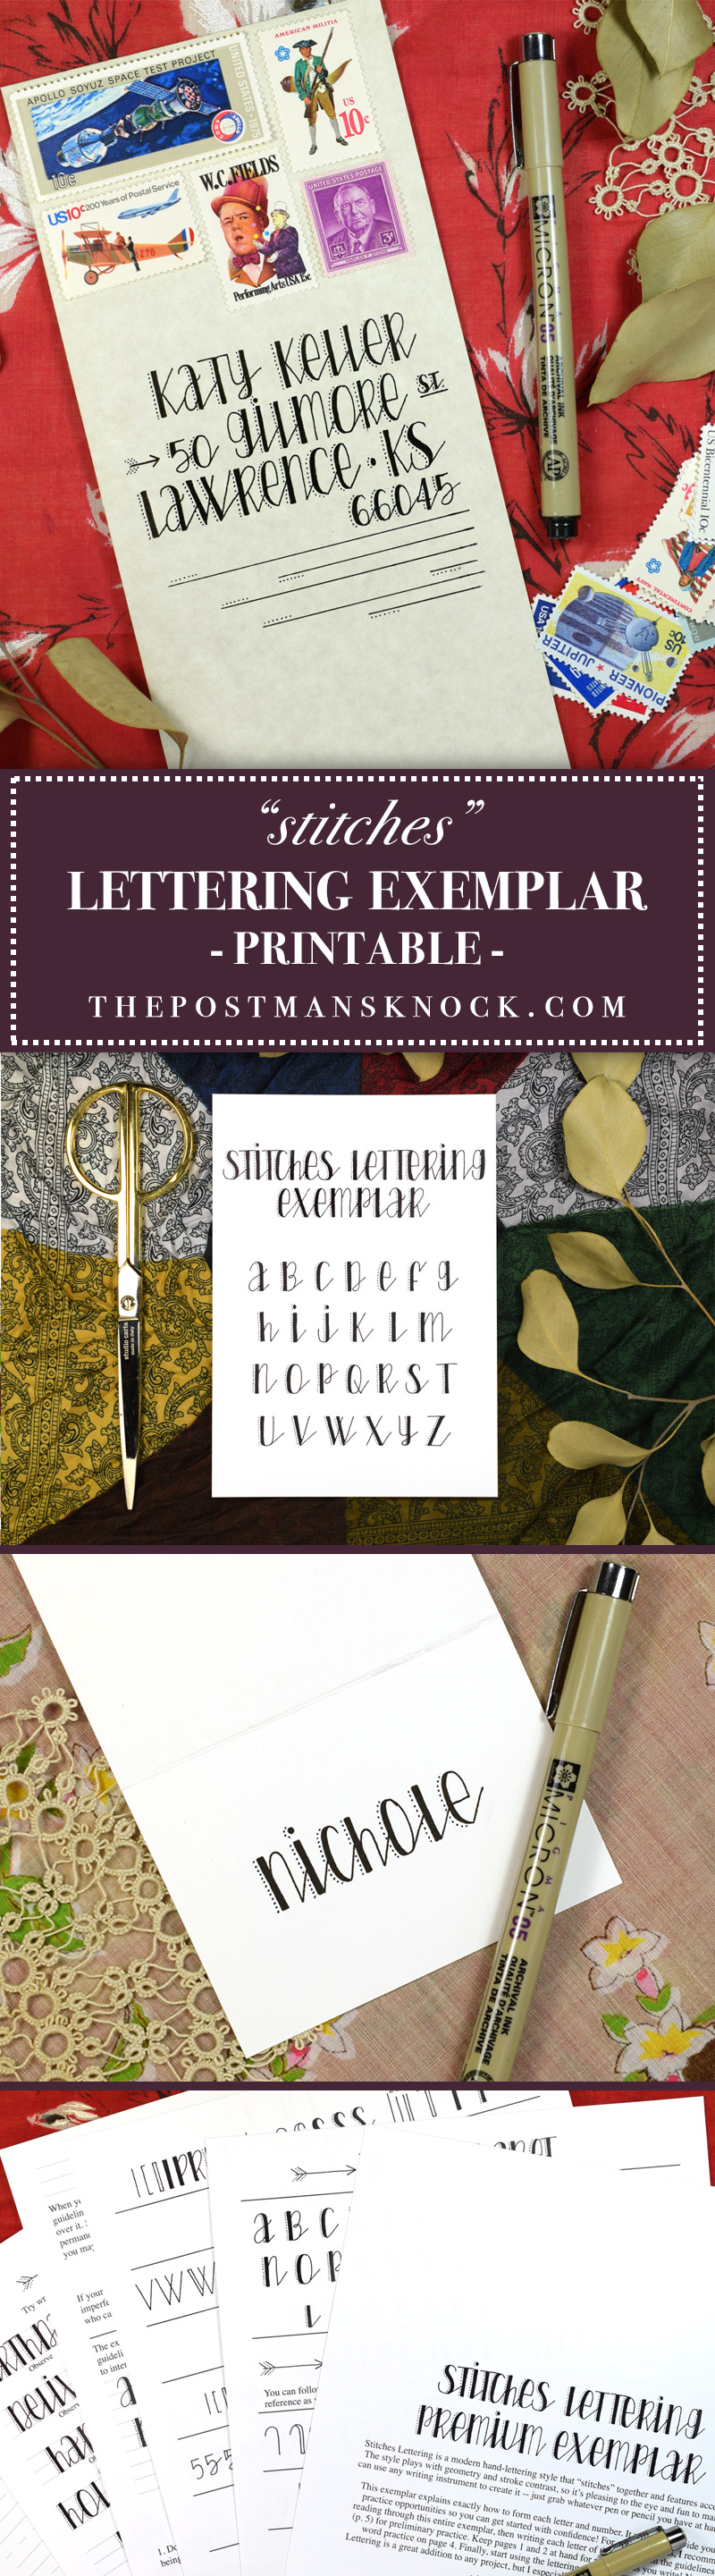 """Stitches"" Printable Hand-Lettering Exemplars 